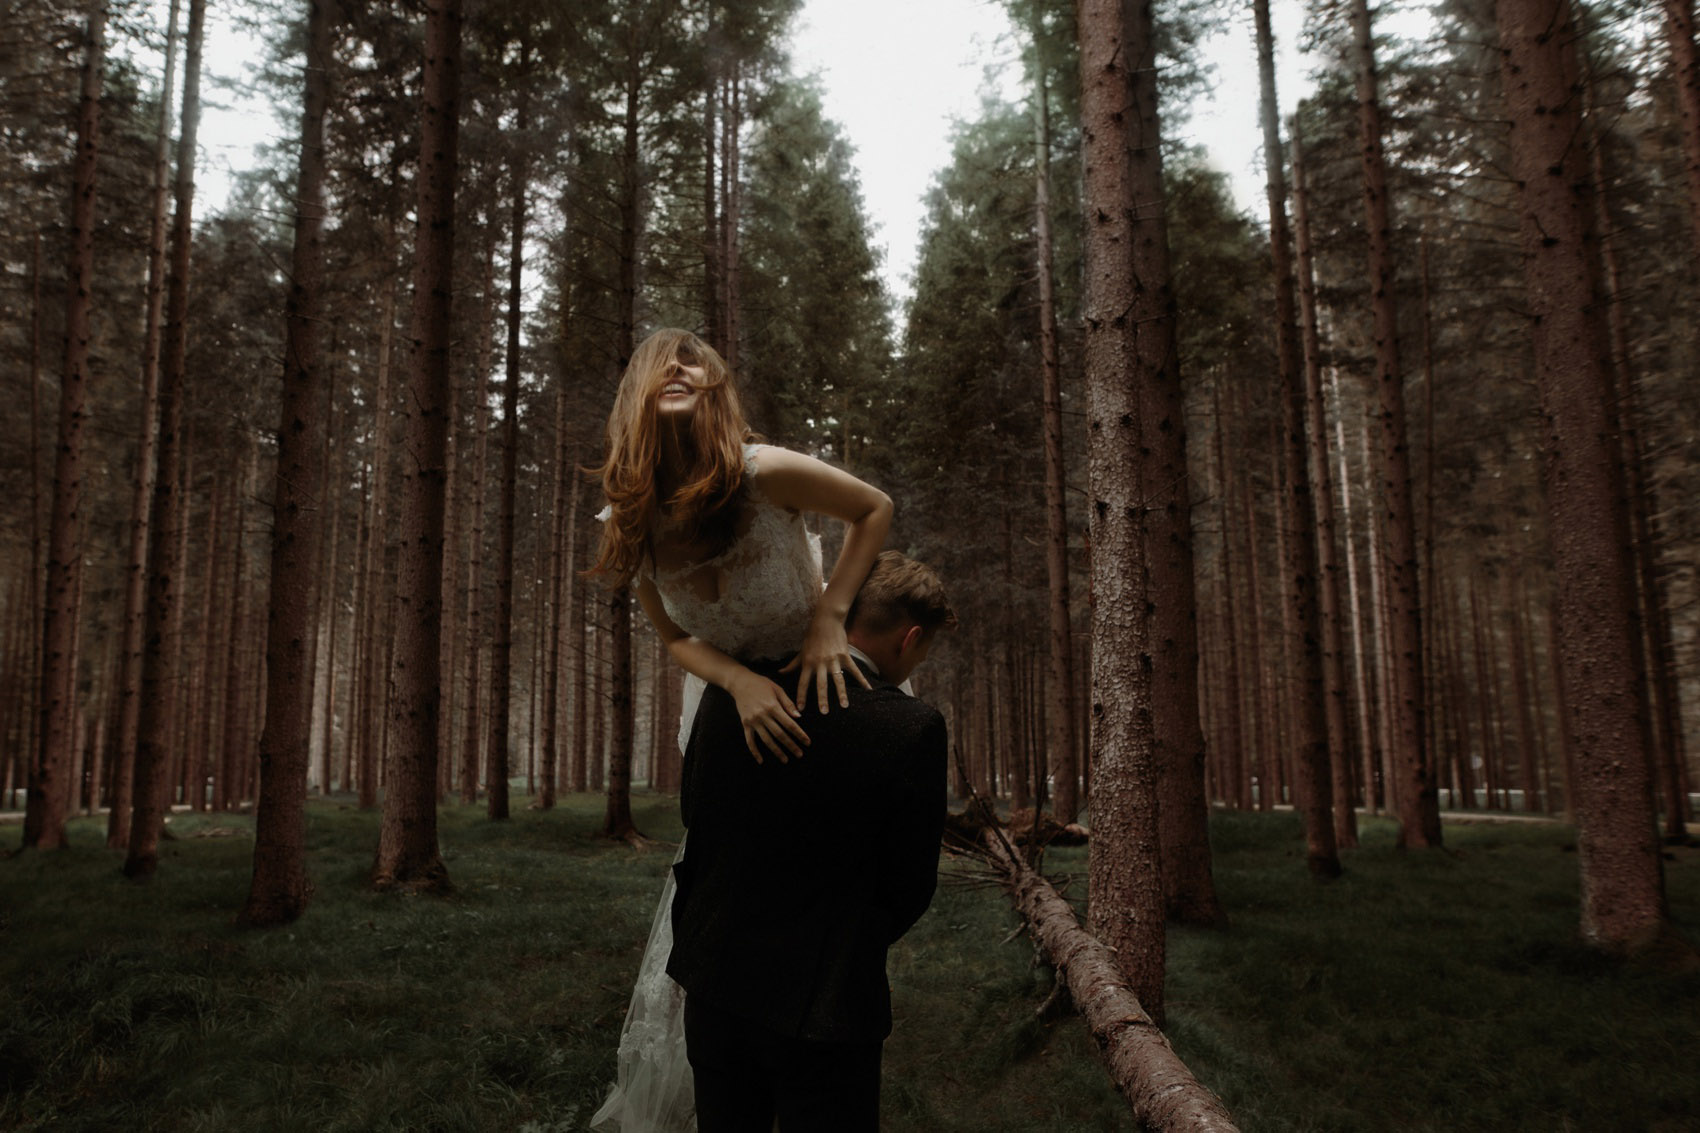 man carries woman in the forest